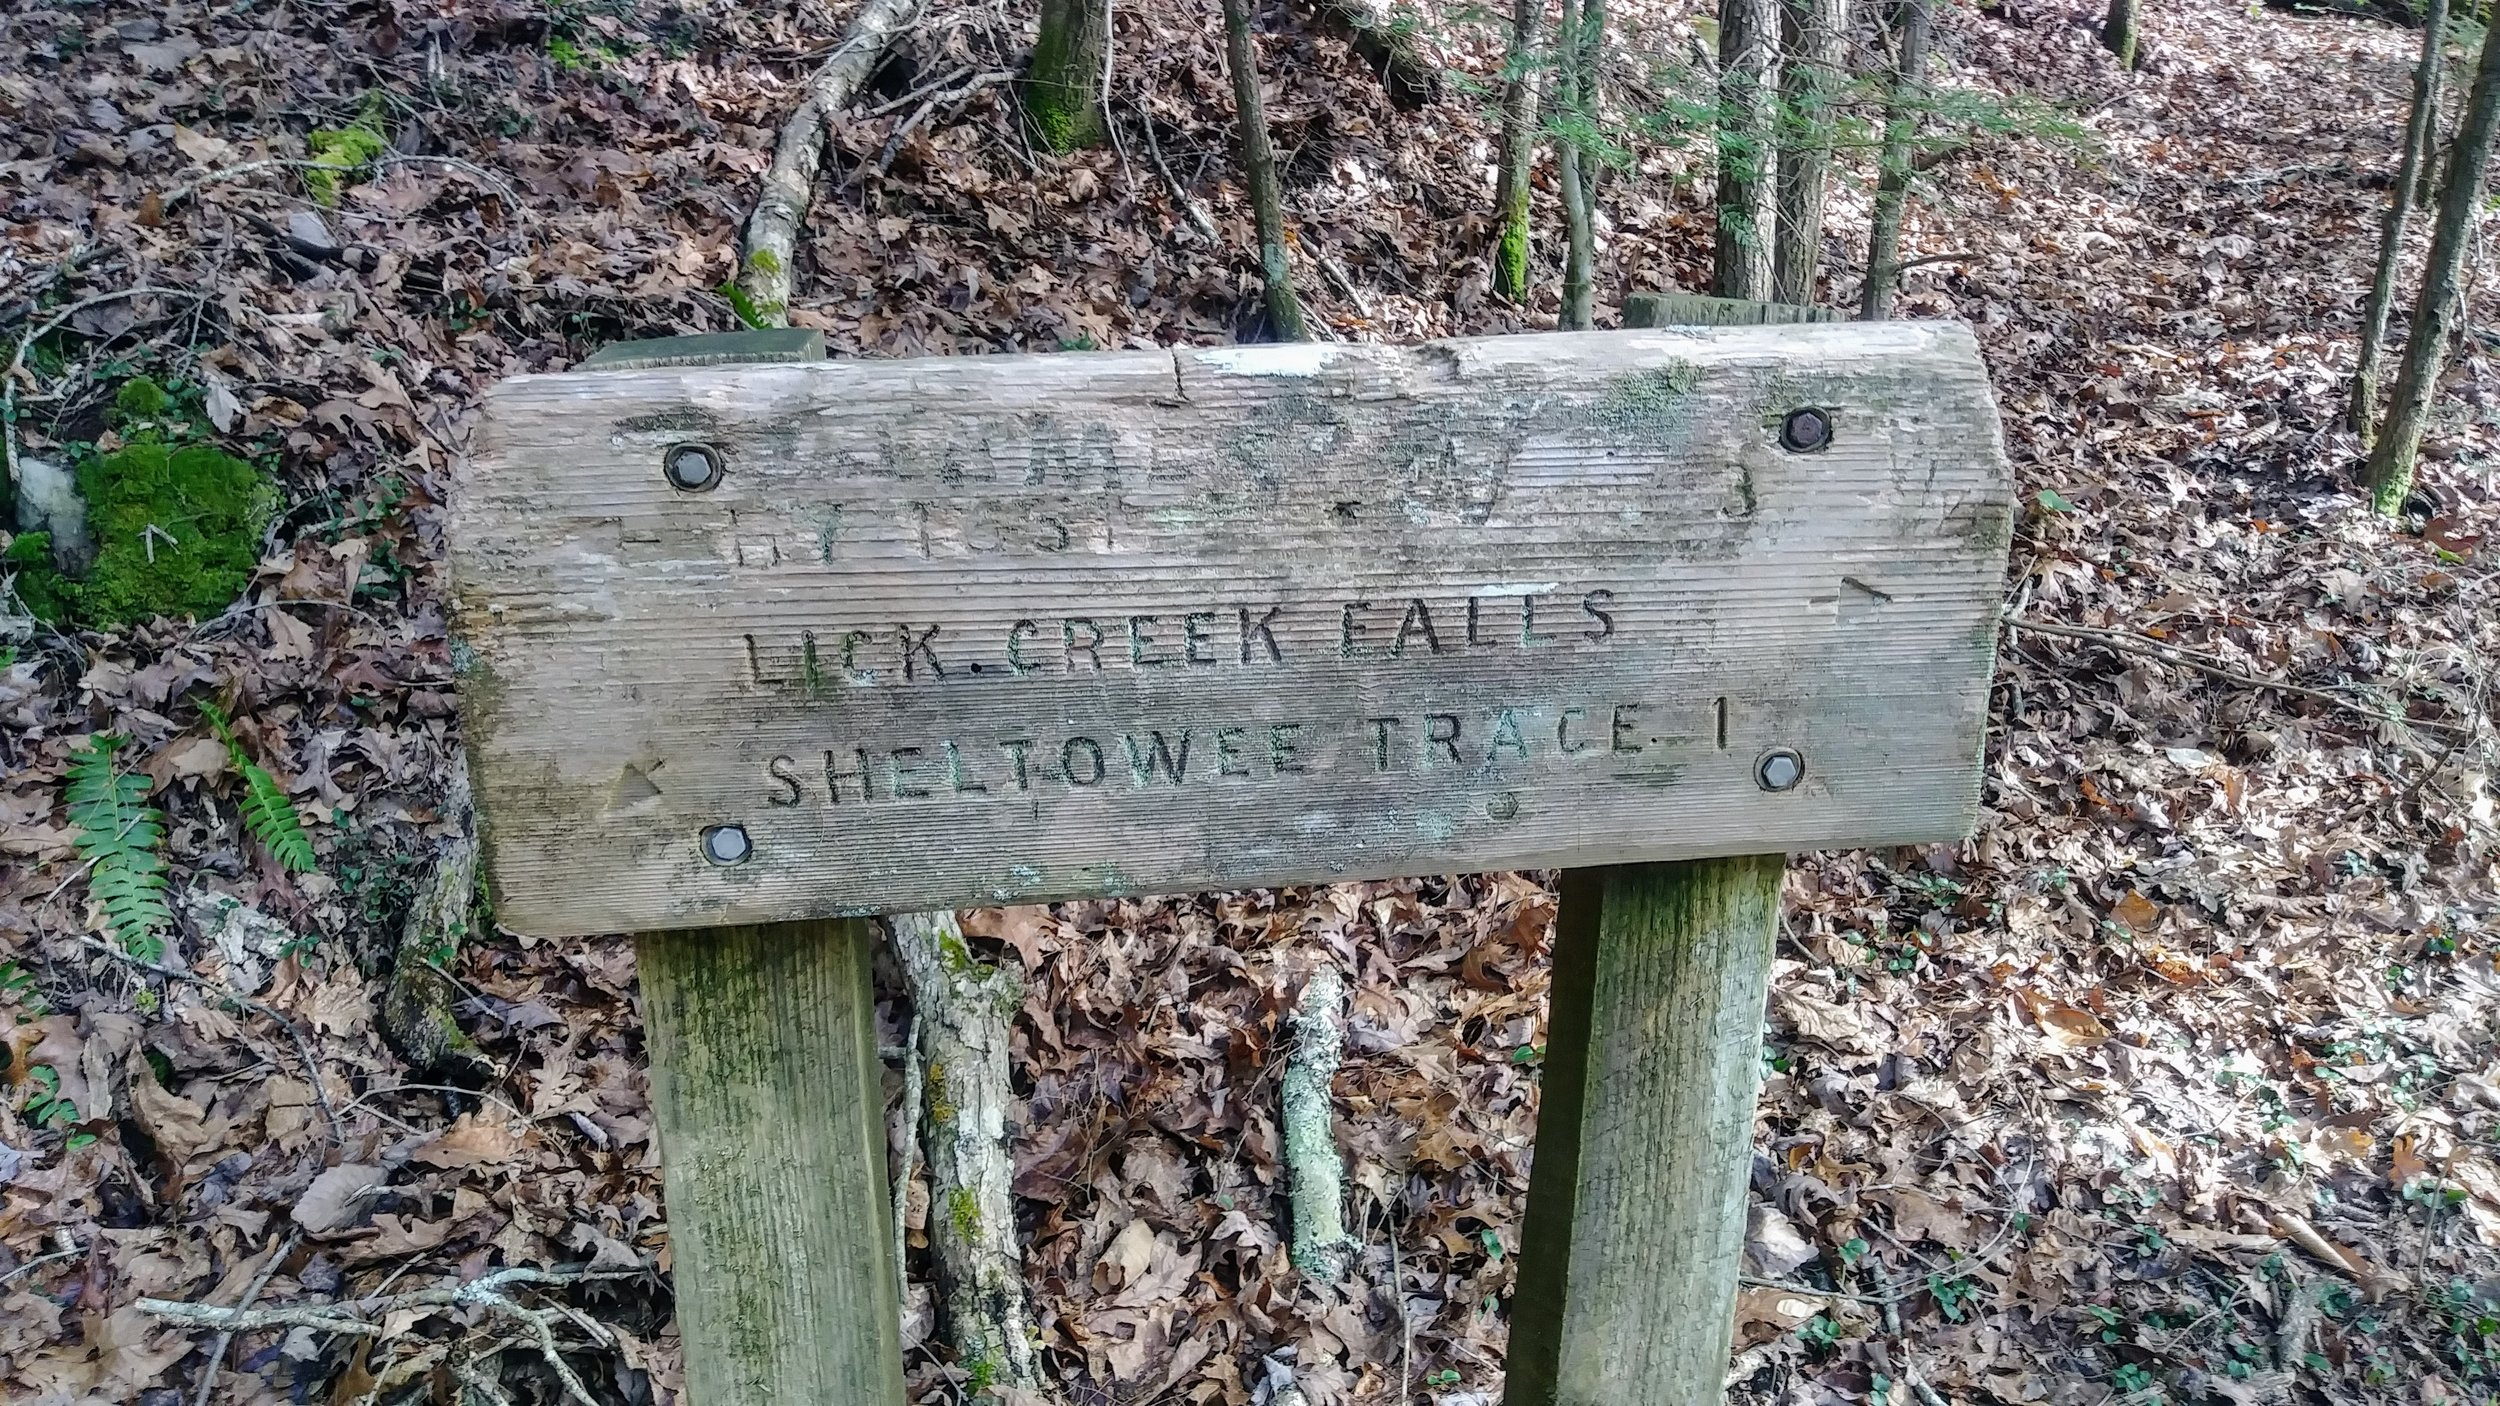 Trail sign coming out of west side of Lick Creek Falls Trail - take a sharp left toward Sheltowee Trace to get to Princess Falls